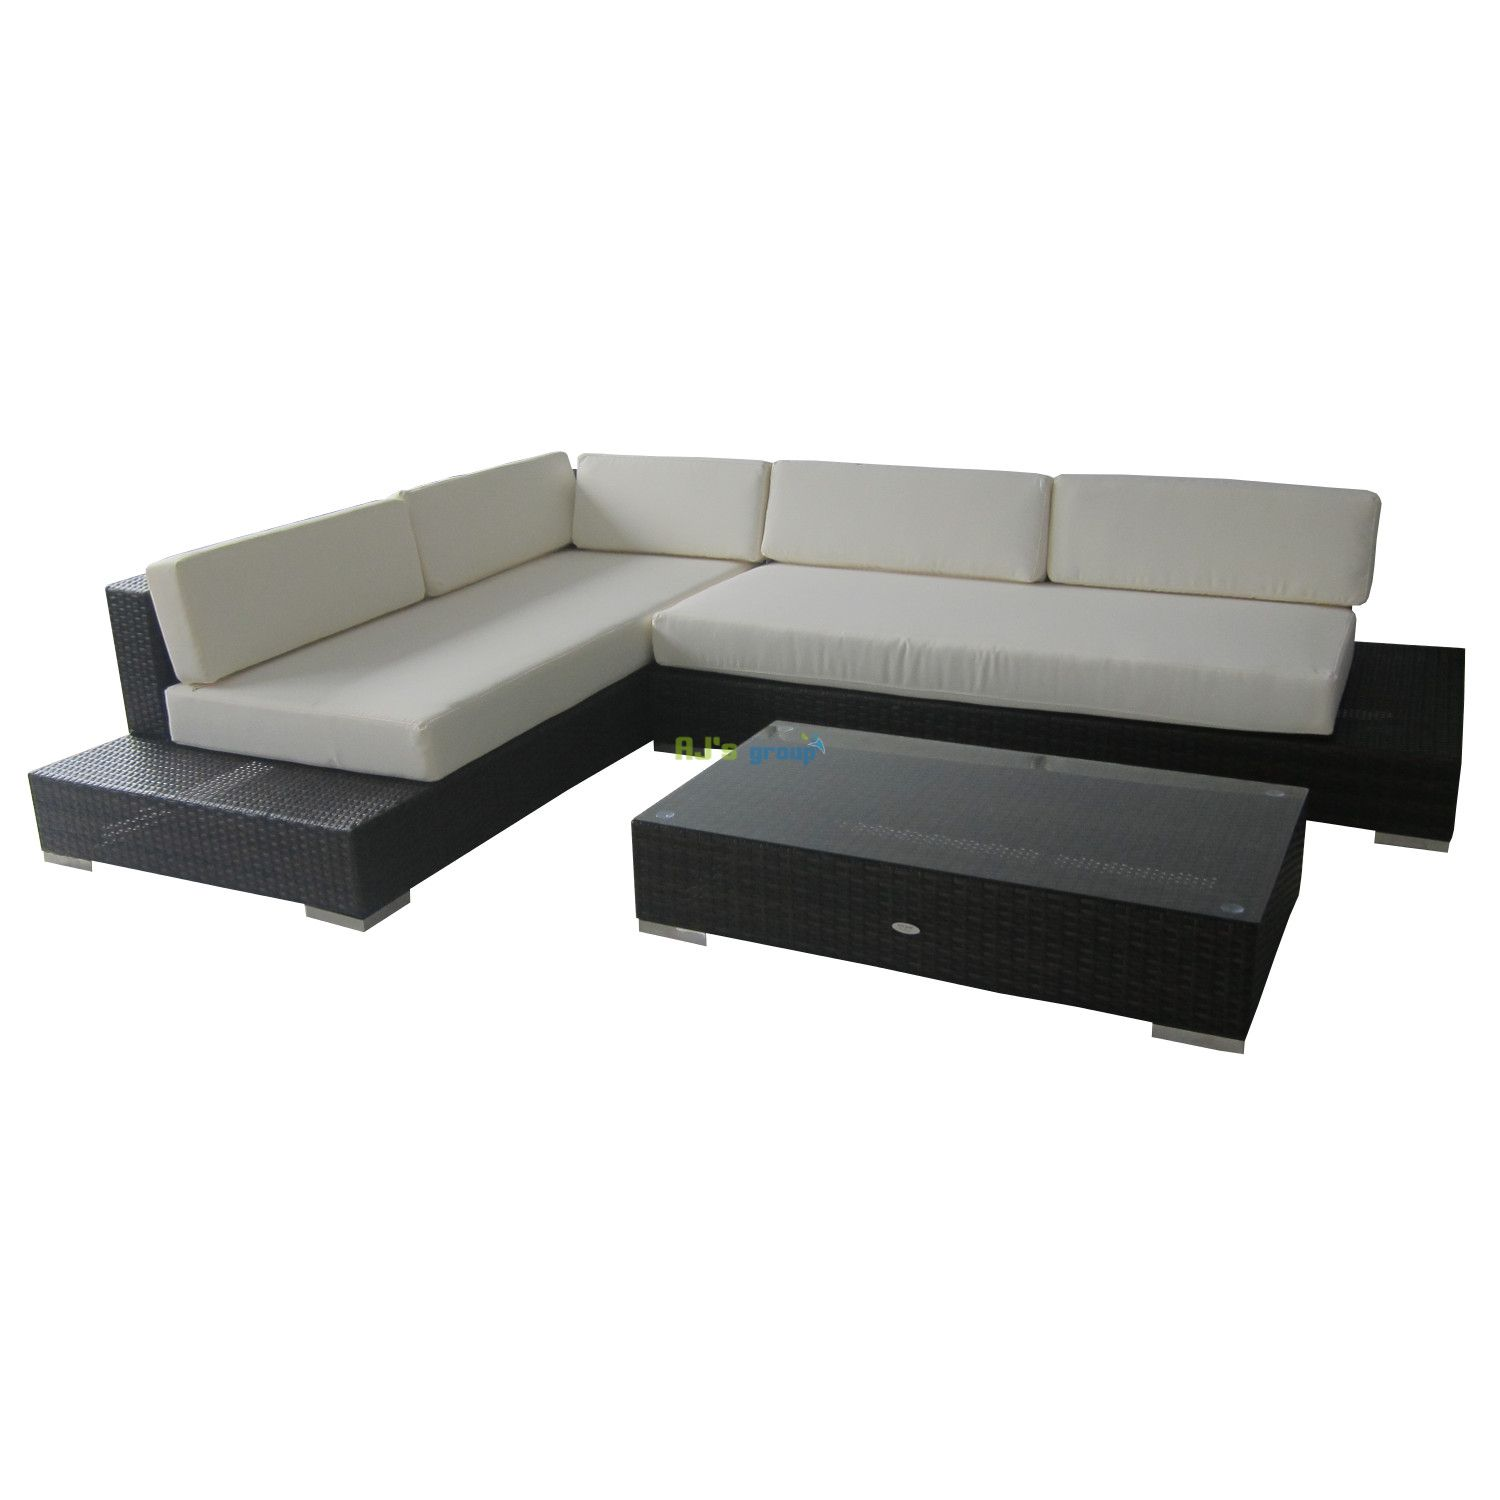 gartenm bel sitzgruppe rattan lounge dekoration. Black Bedroom Furniture Sets. Home Design Ideas